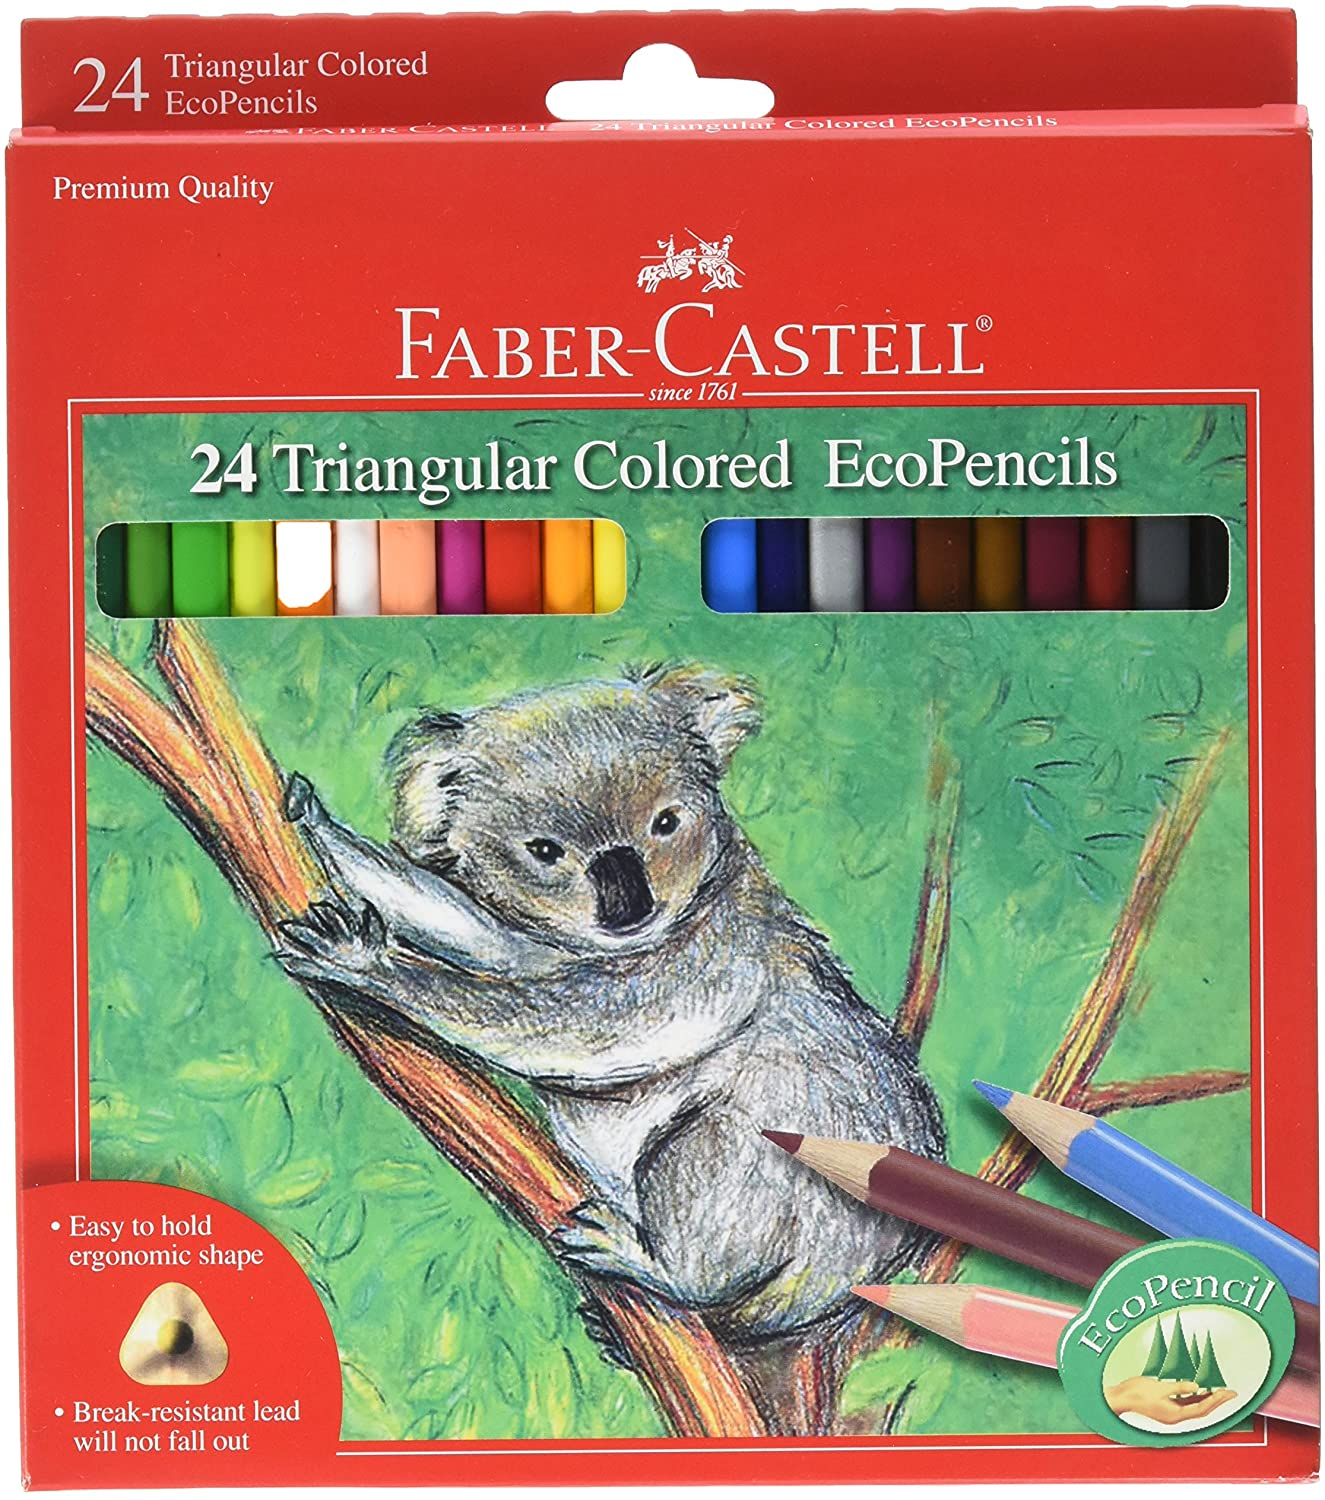 Faber-Castell Triangular Colored EcoPencils - 24 Count: Toys & Games